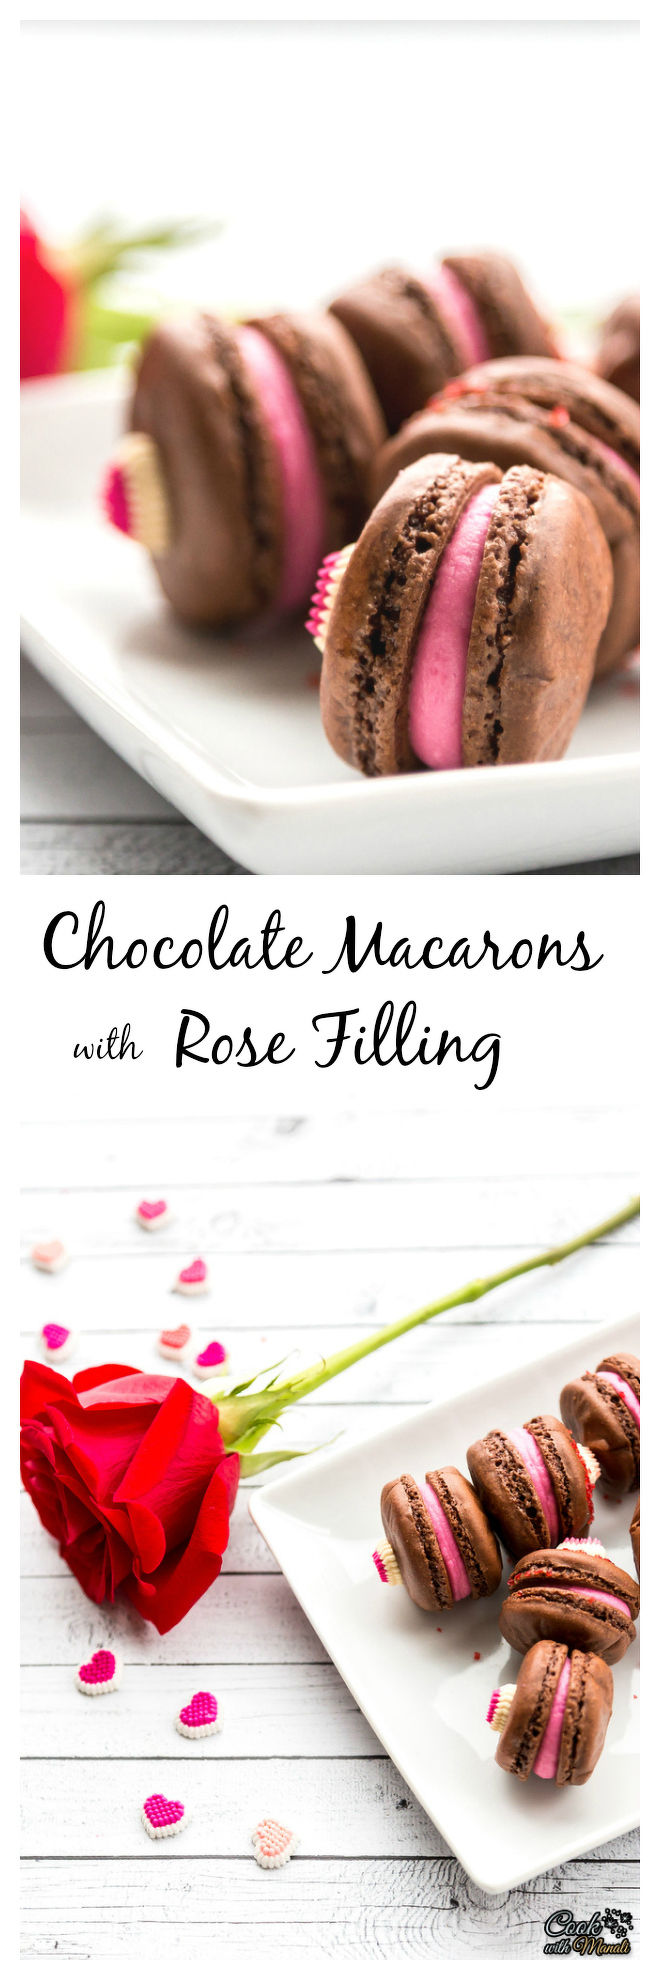 Chocolate Macarons with Rose Filling Collage-nocwm